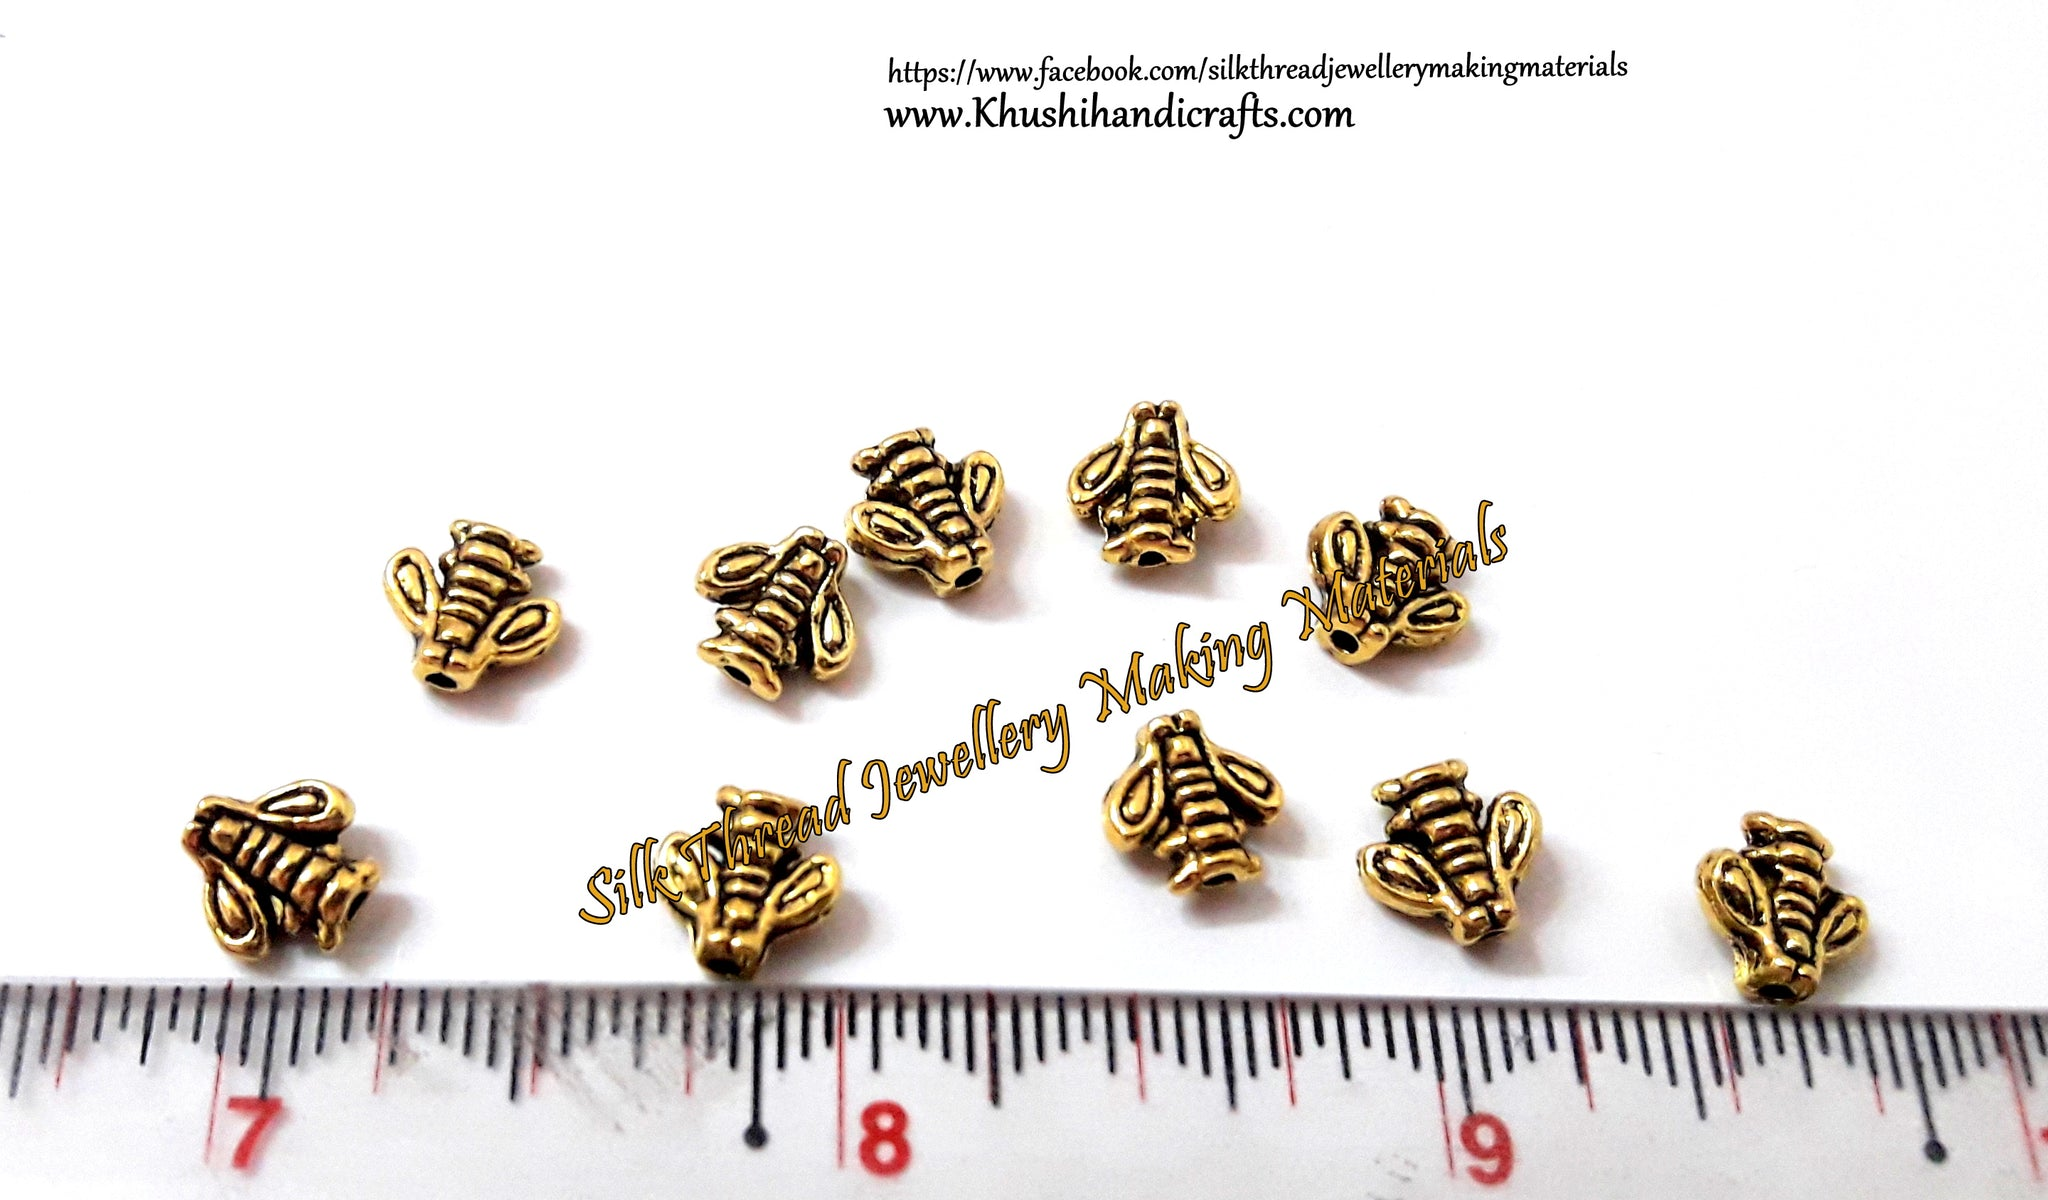 Angel spacer beads